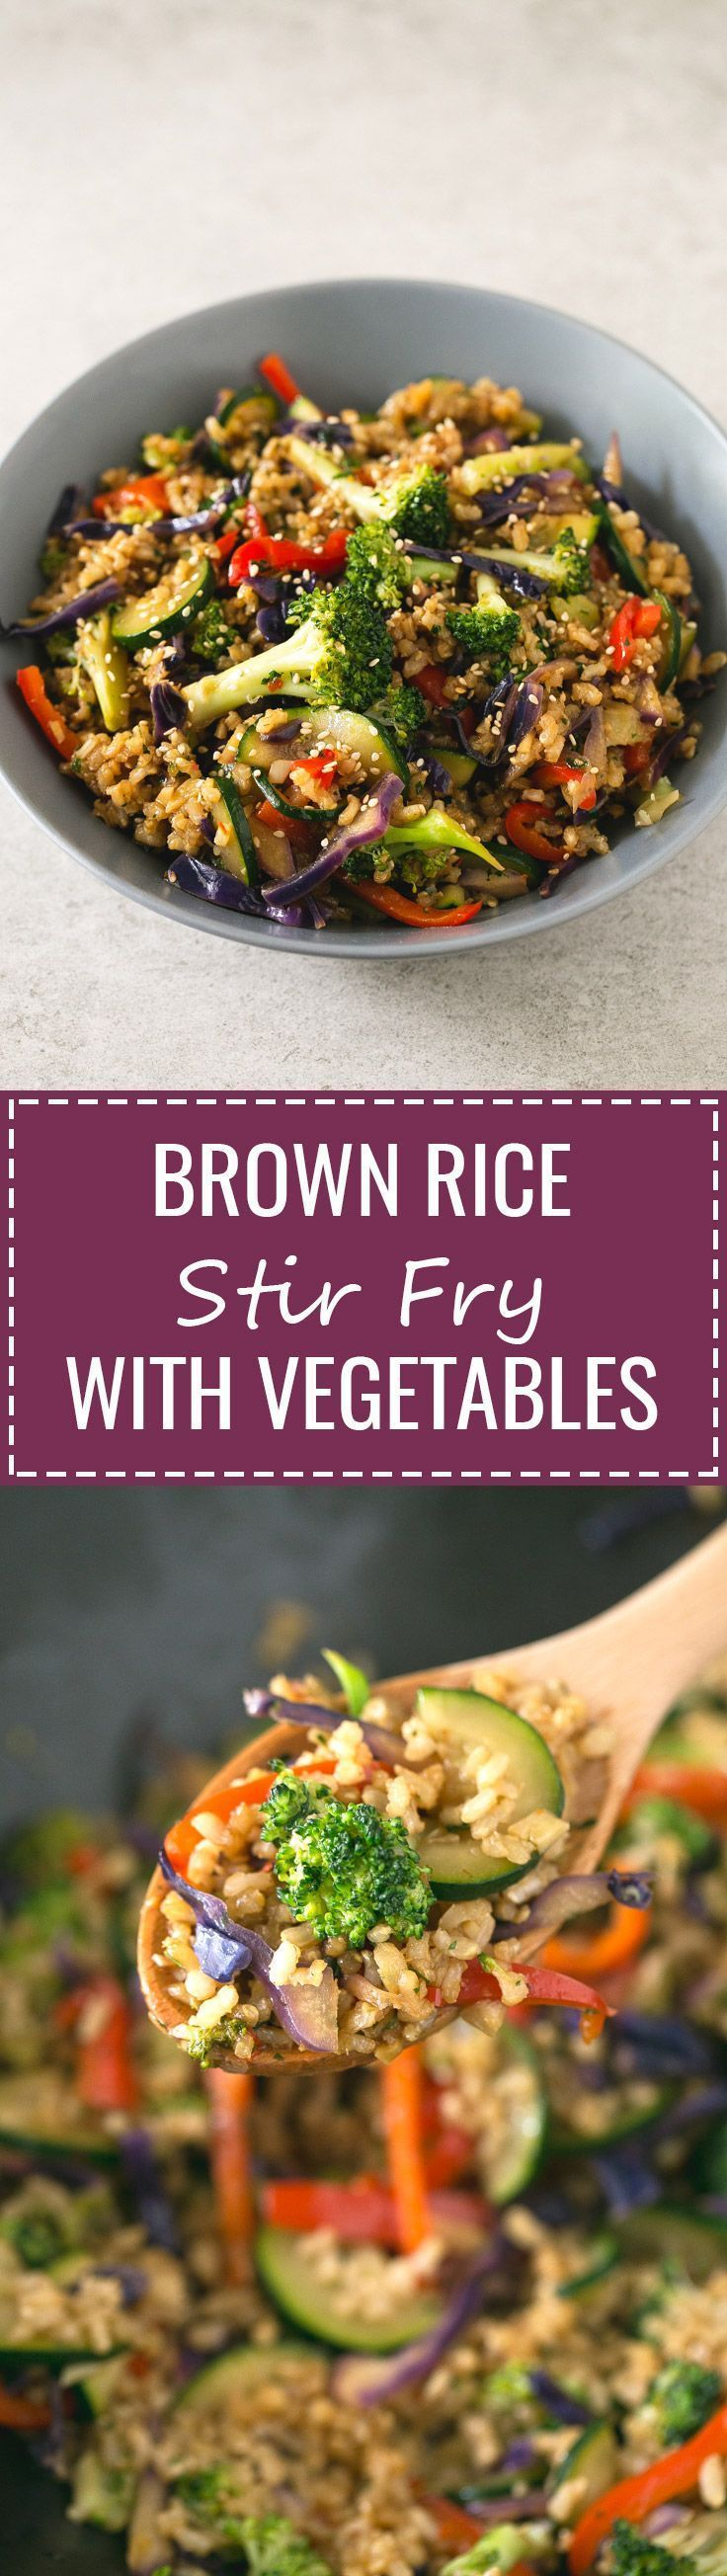 Rice Stir-Fry with Vegetables Brown rice stir fry with vegetables - I make this brown rice stir-fry with vegetables every single week. This recipe is life-changing and so simple, I'm sure you'll love it!Brown rice stir fry with vegetables - I make this brown rice stir-fry with vegetables every single week. This recipe is life-changing and so simple, I'm sure you'll love...